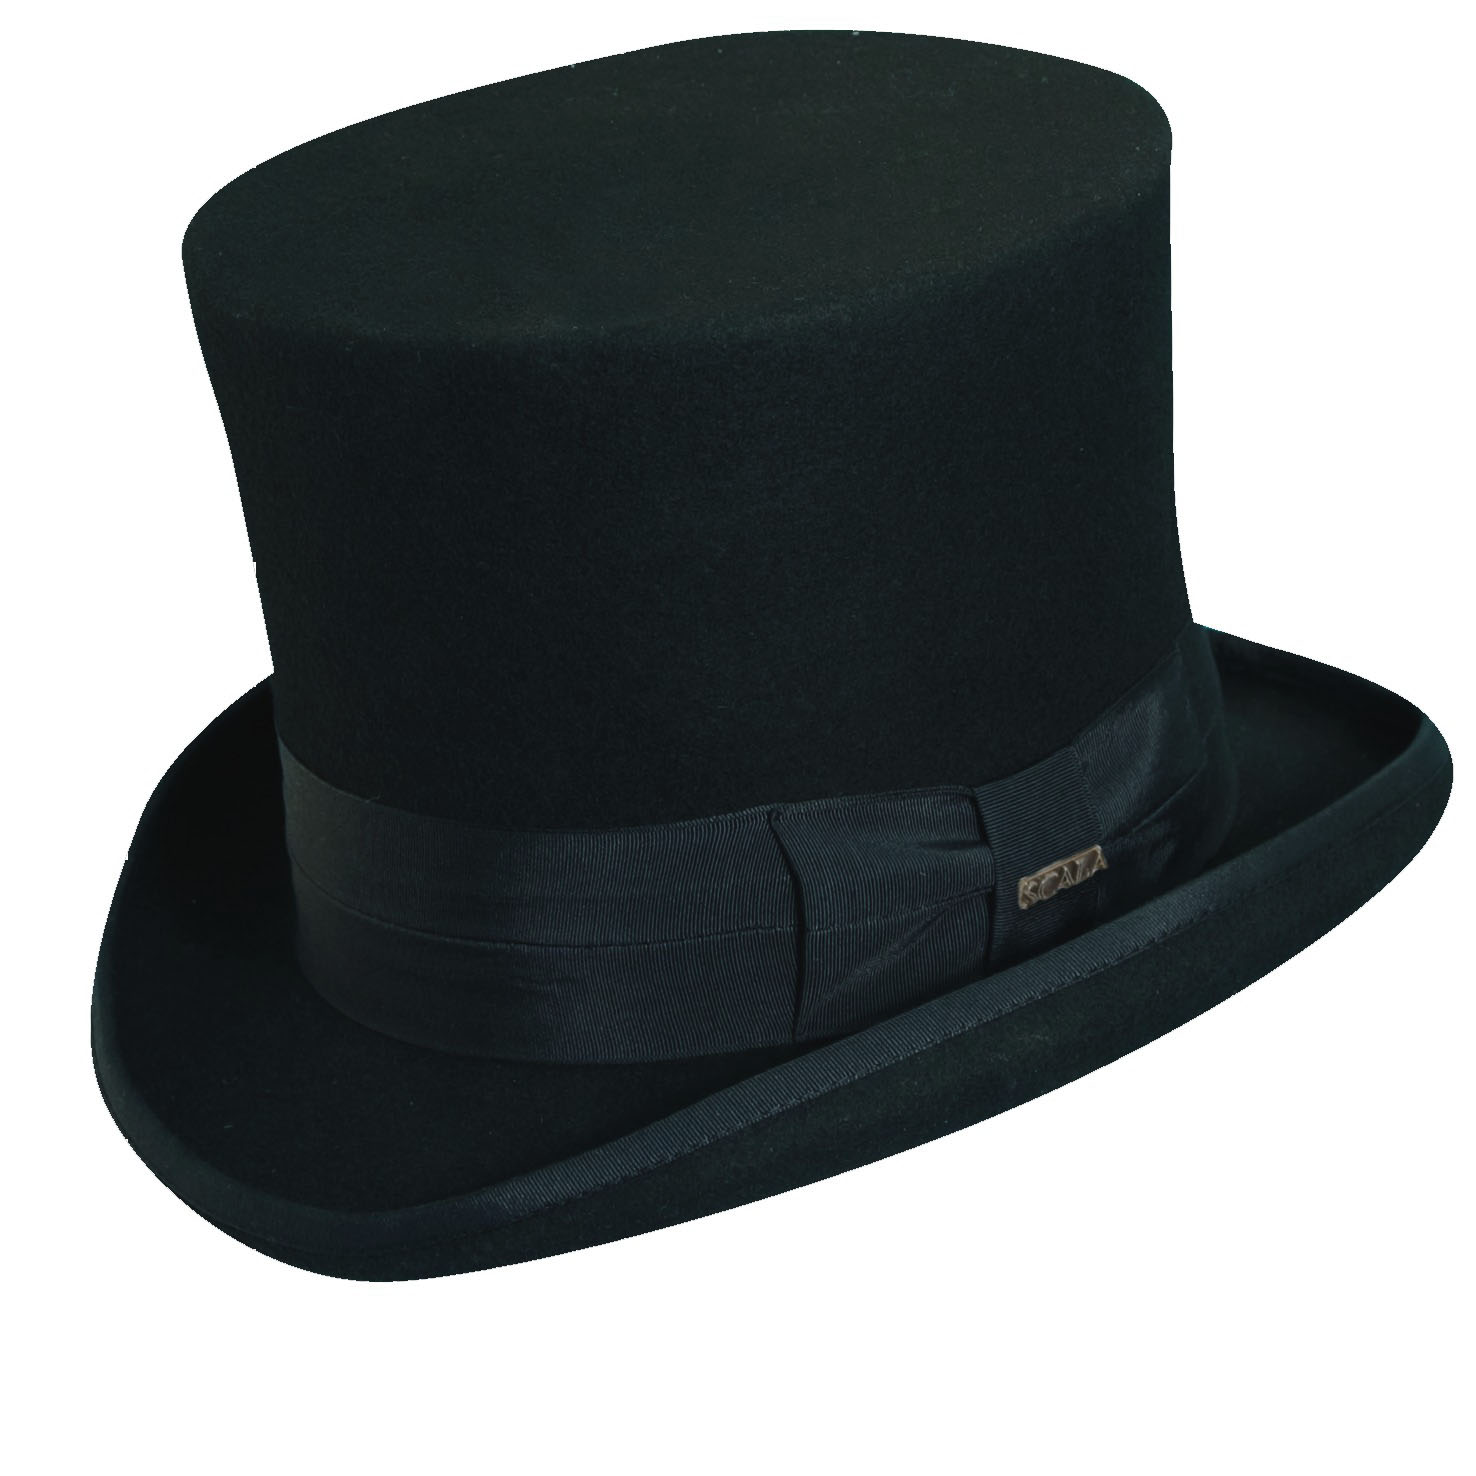 5fac97282d5 Wool Felt Top Hat with 7 inch Crown Black